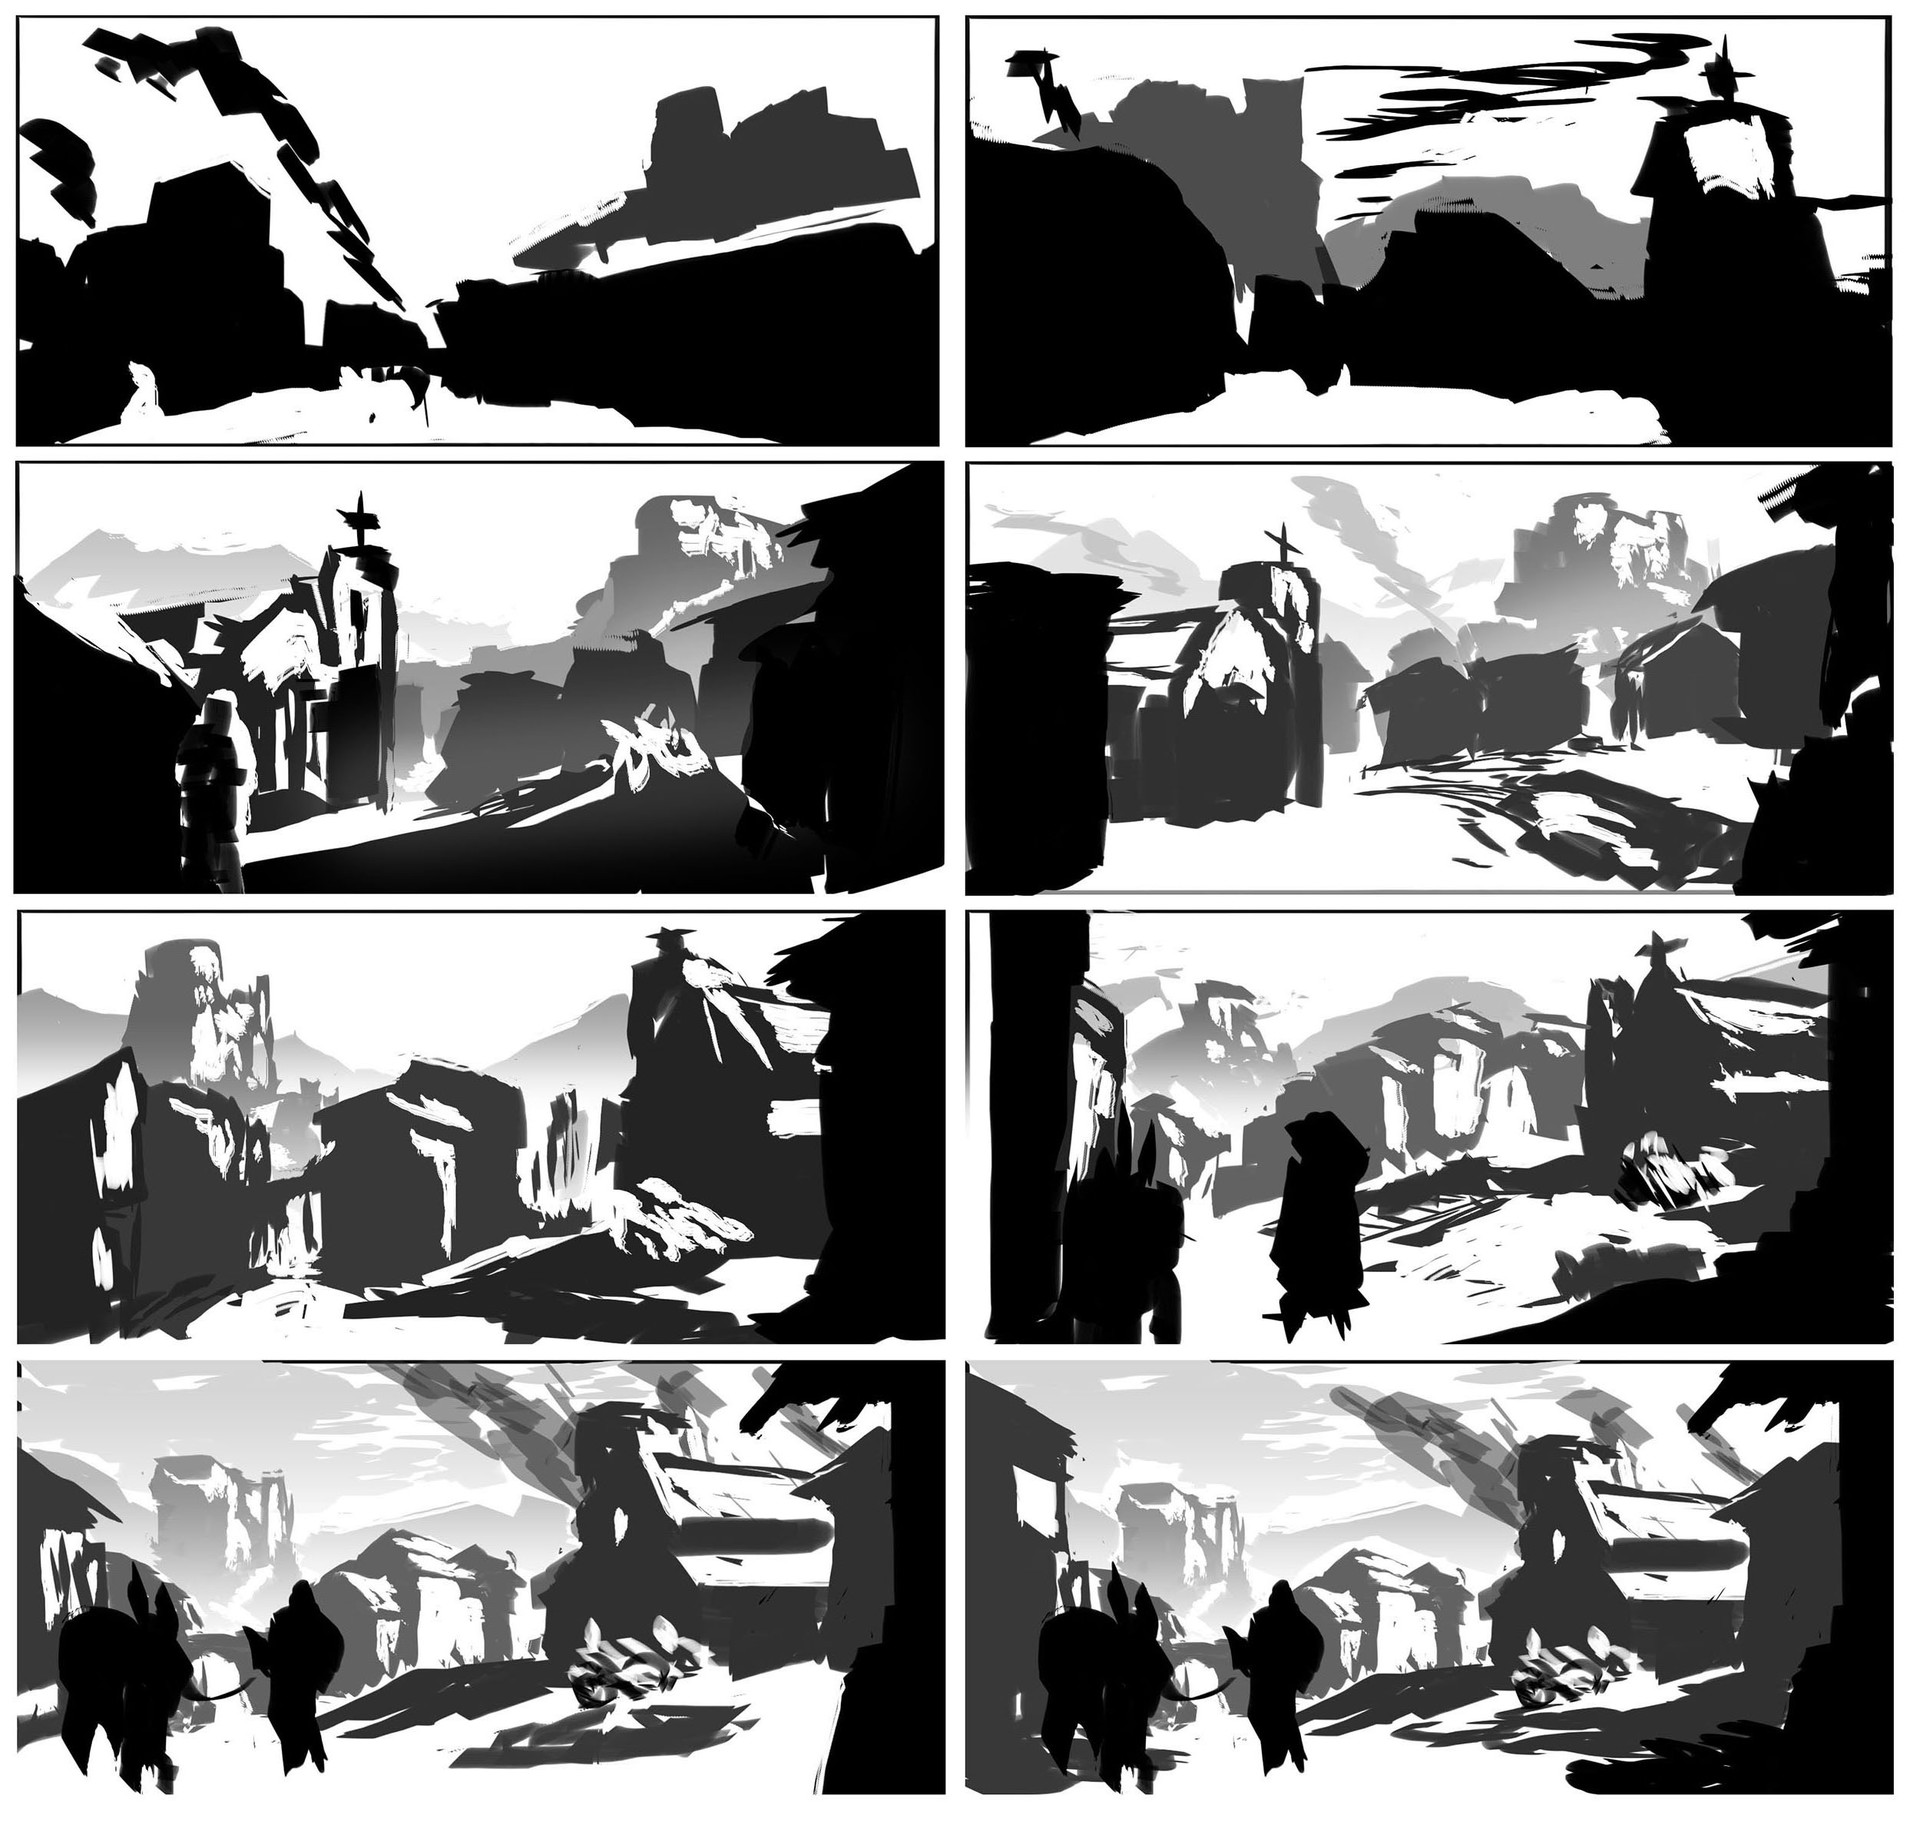 WIP 01: Composition Sketches